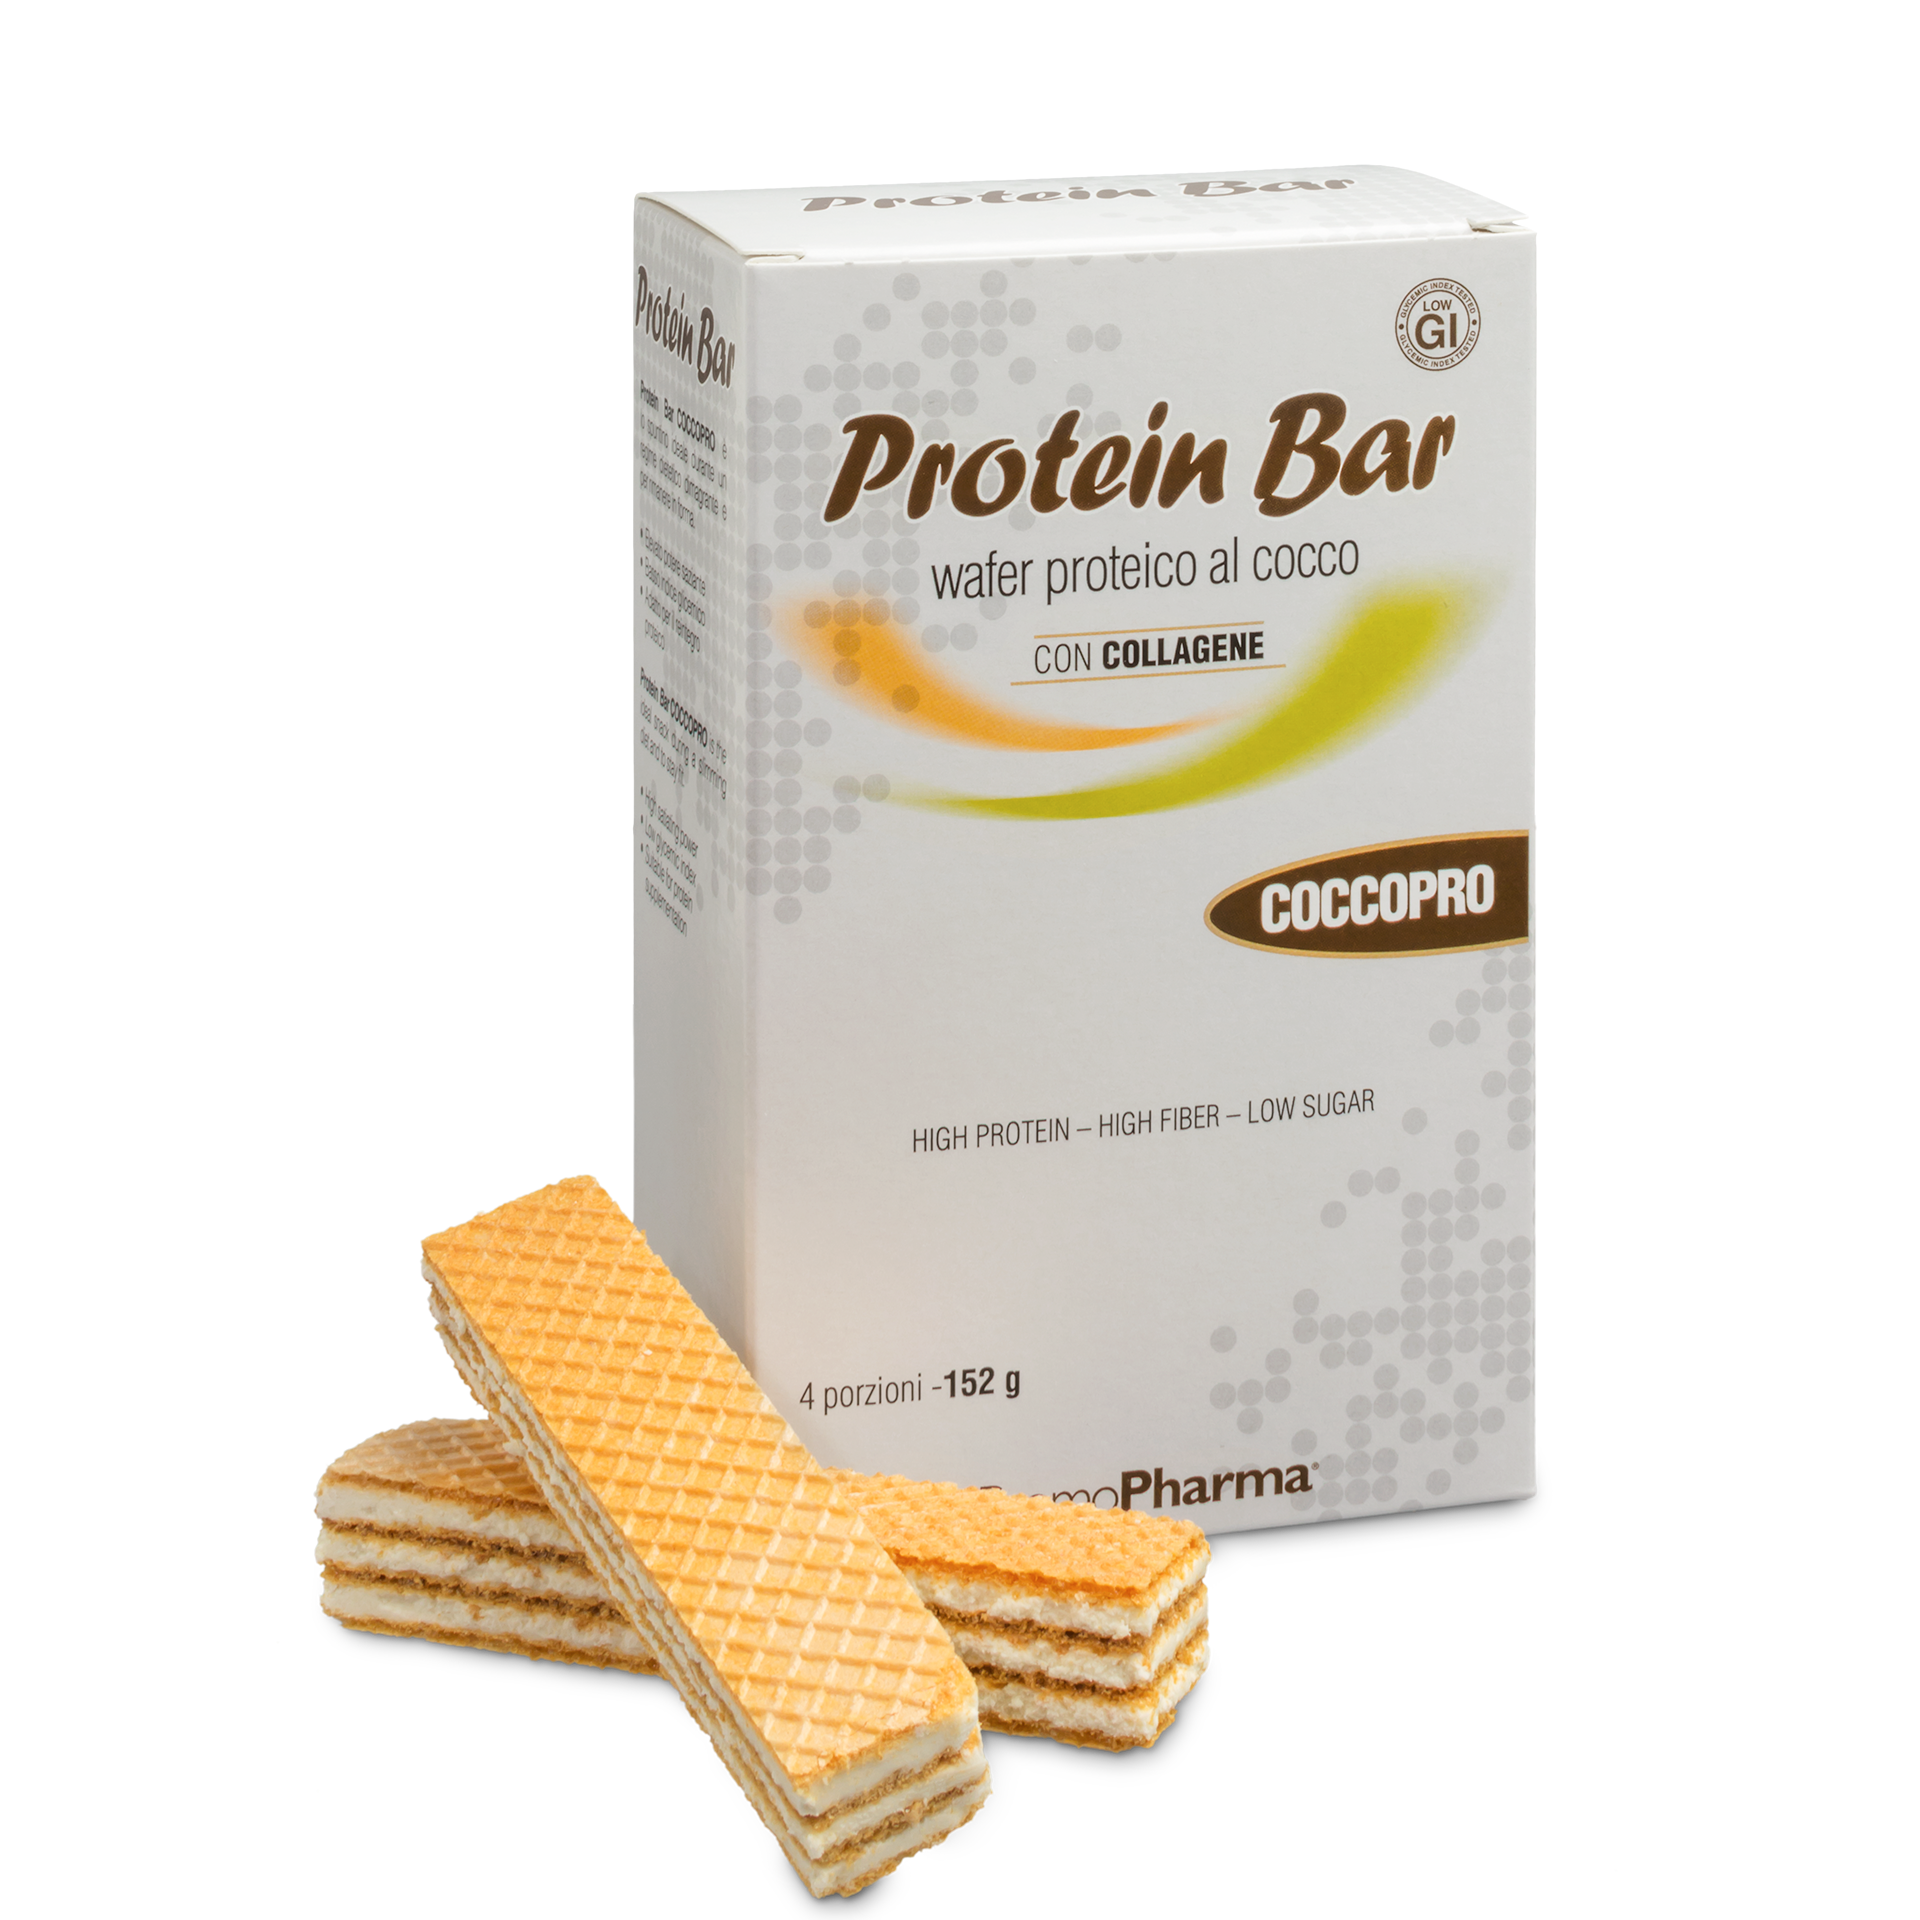 Protein bar Coccopro